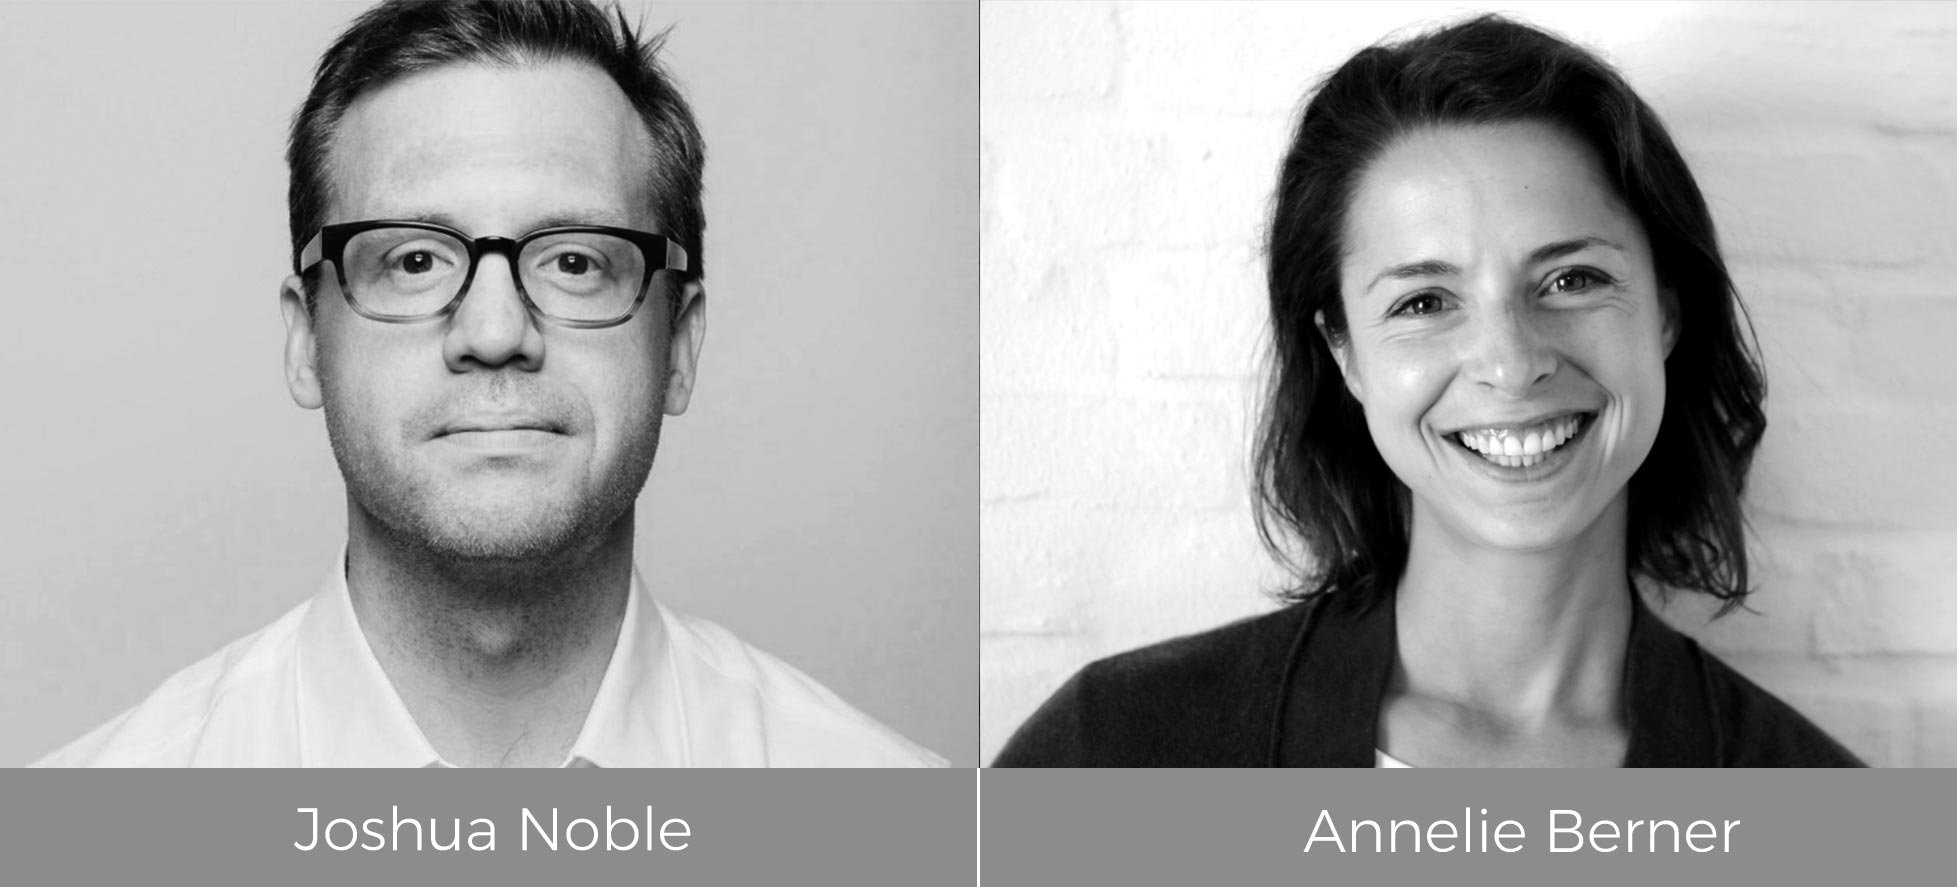 Joshua Noble and Annelie Berner